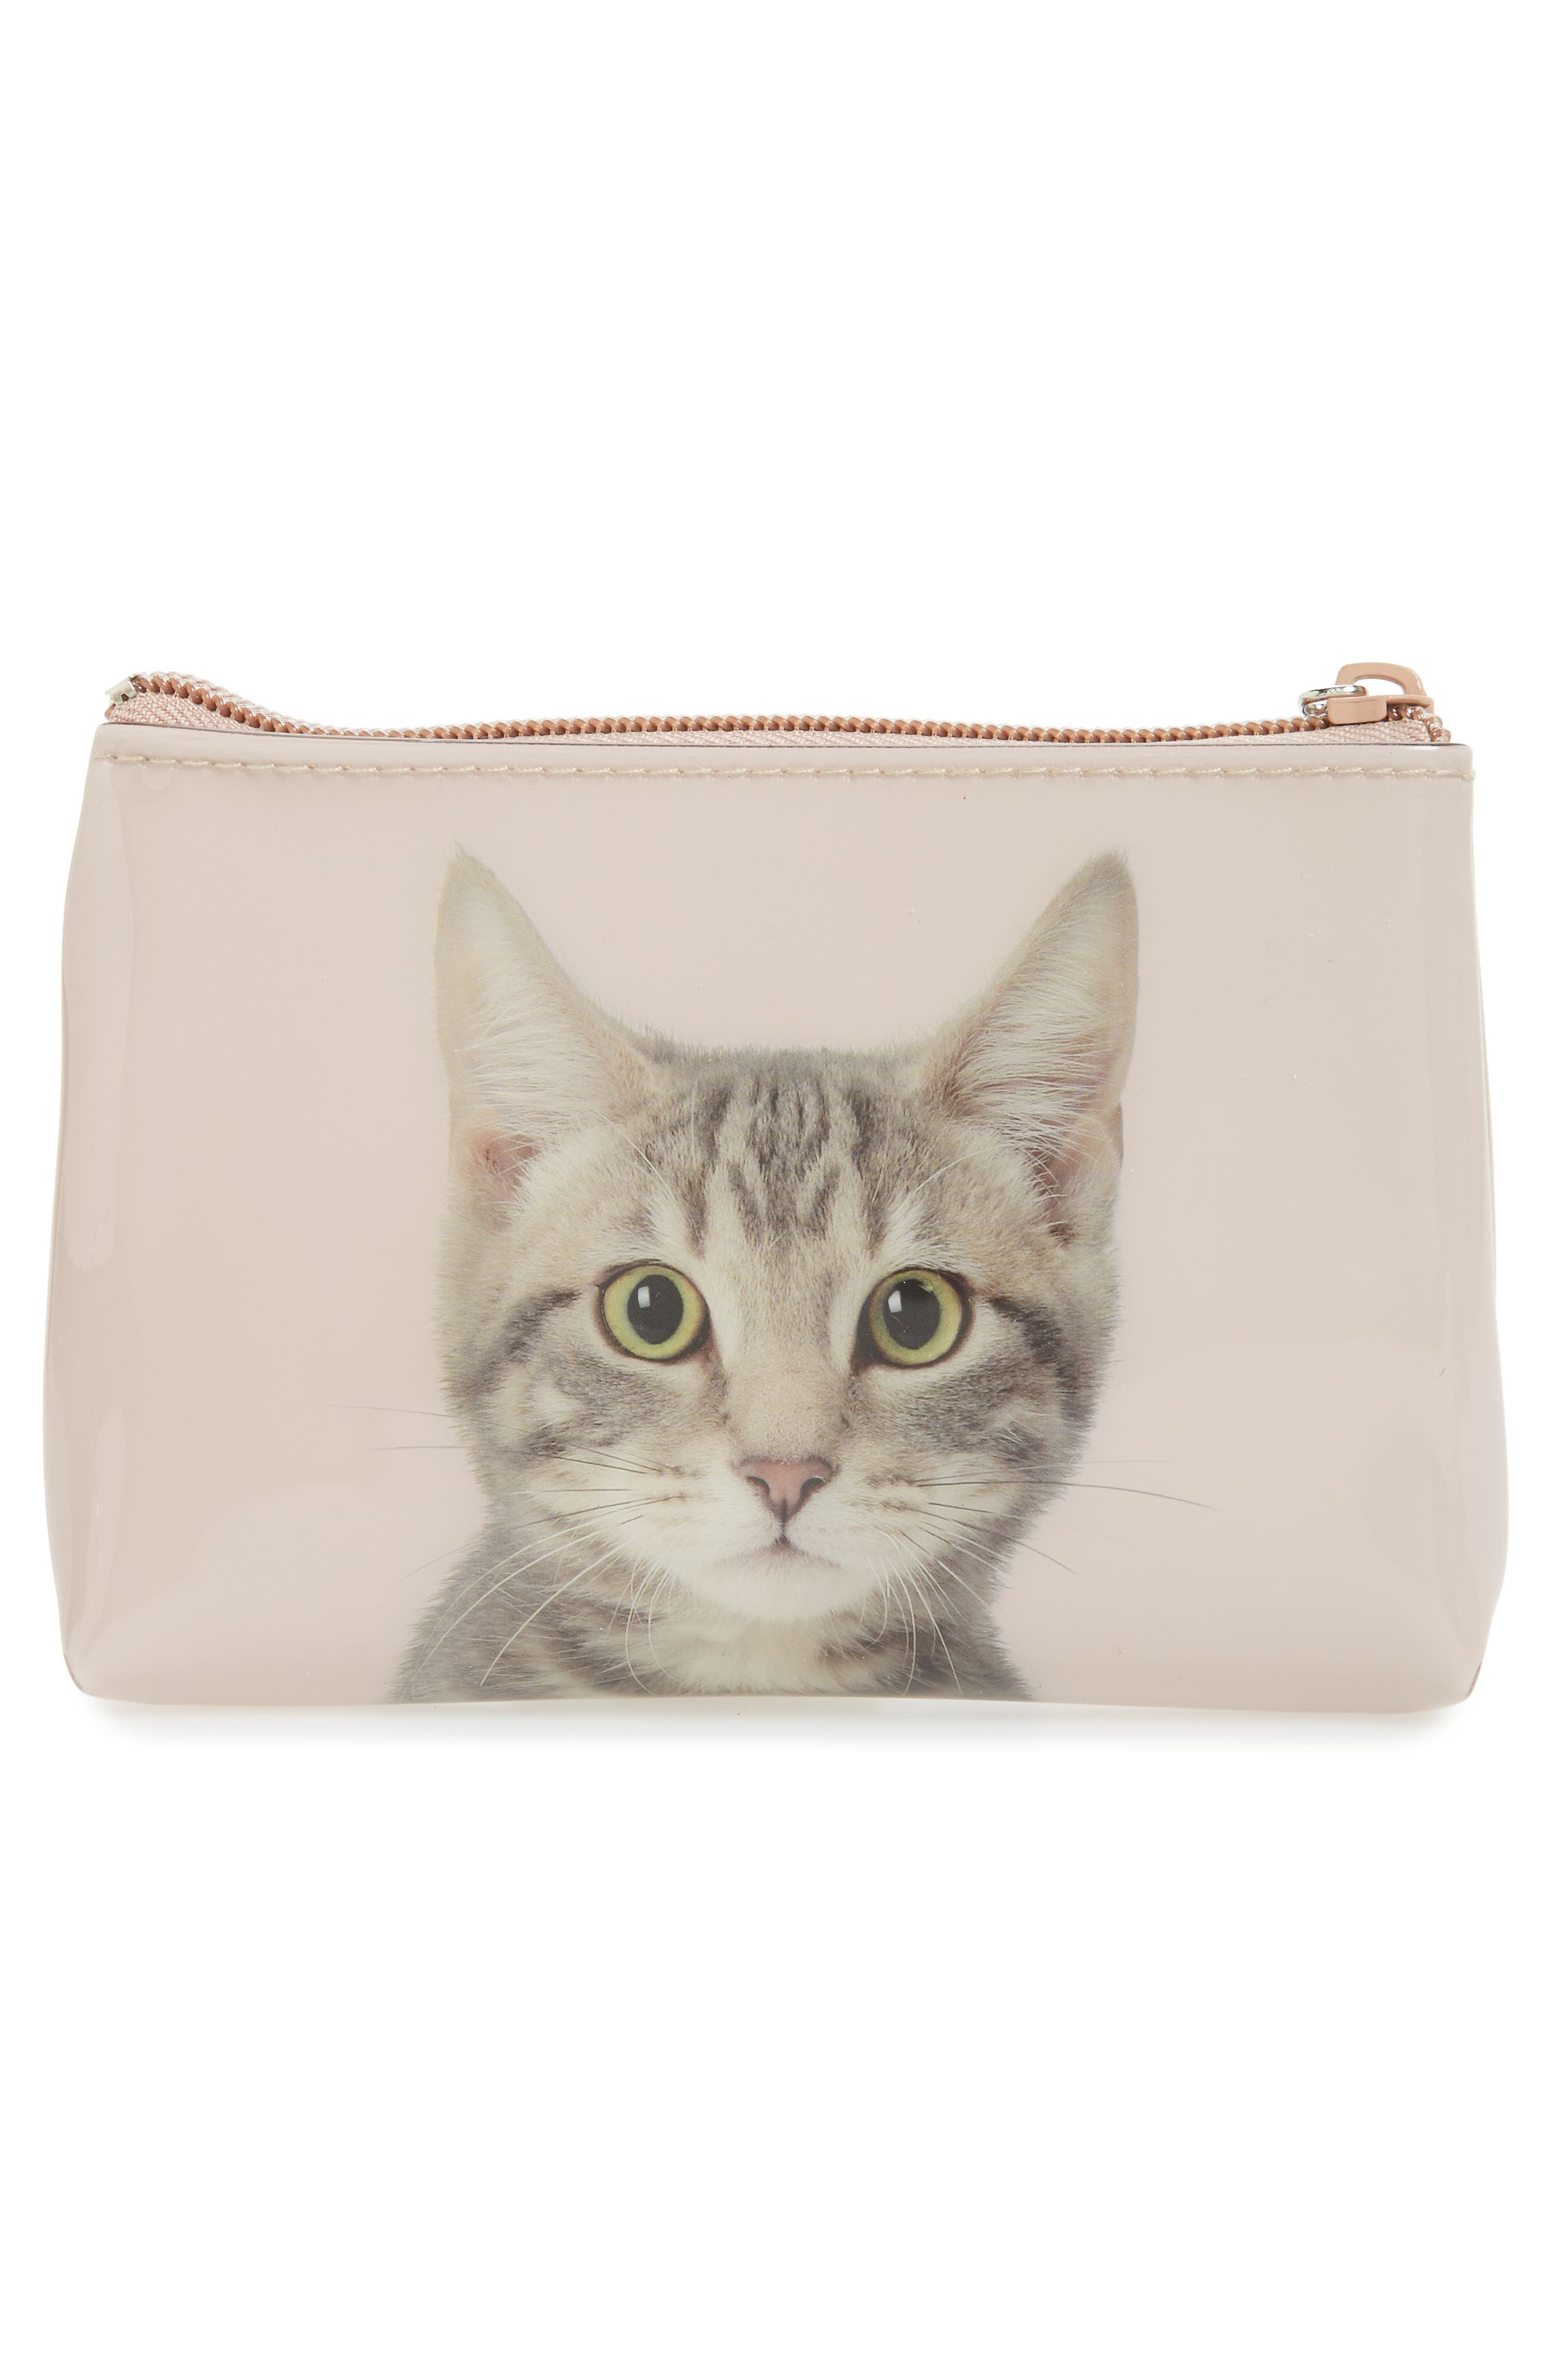 Small Kitty Zip Pouch,                             Alternate thumbnail 3, color,                             250